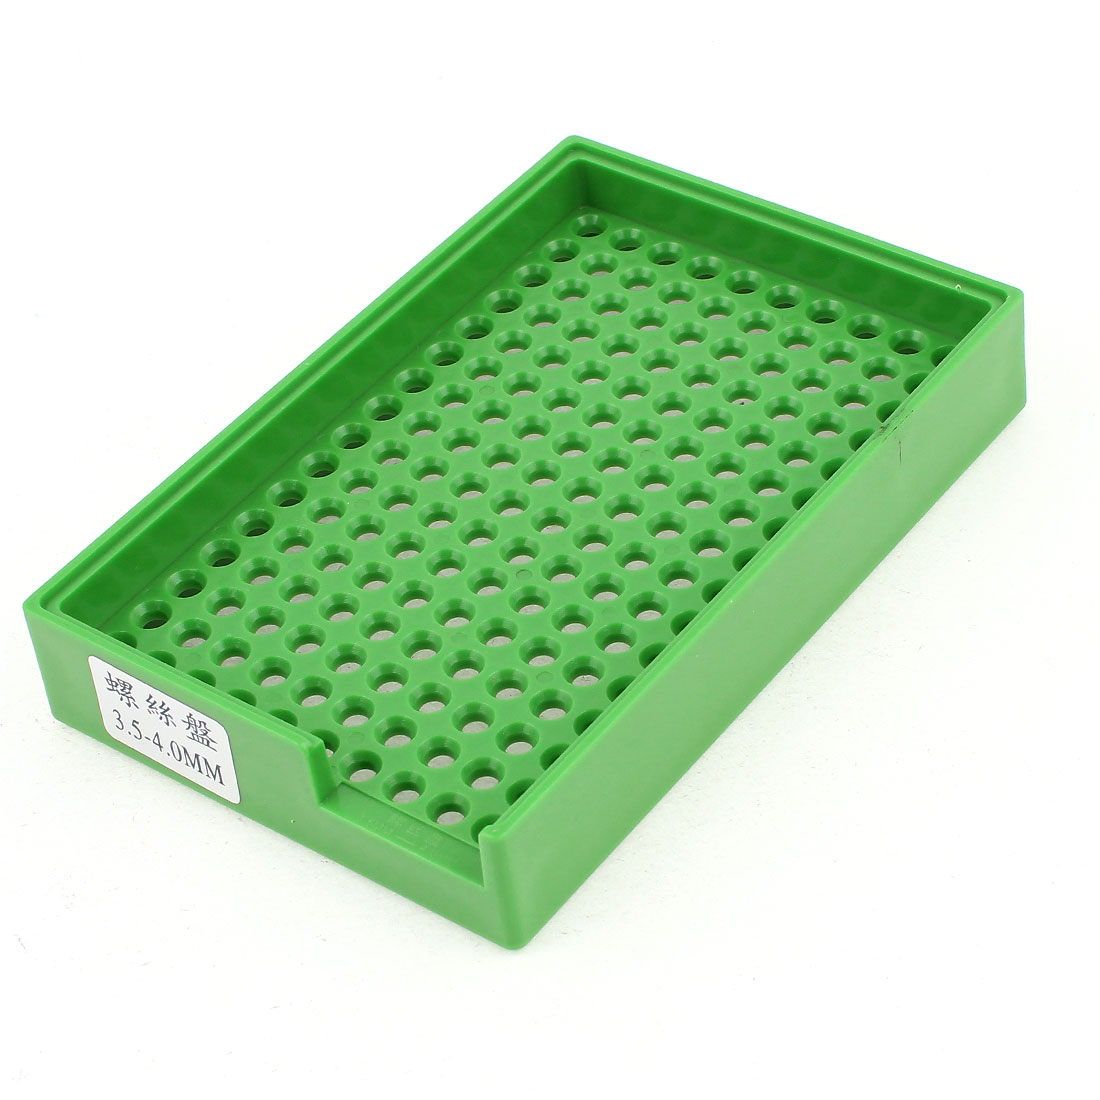 Anti-static Plastic Tray Holder Green 160 Holes for 3.5mm-4.0mm Screws